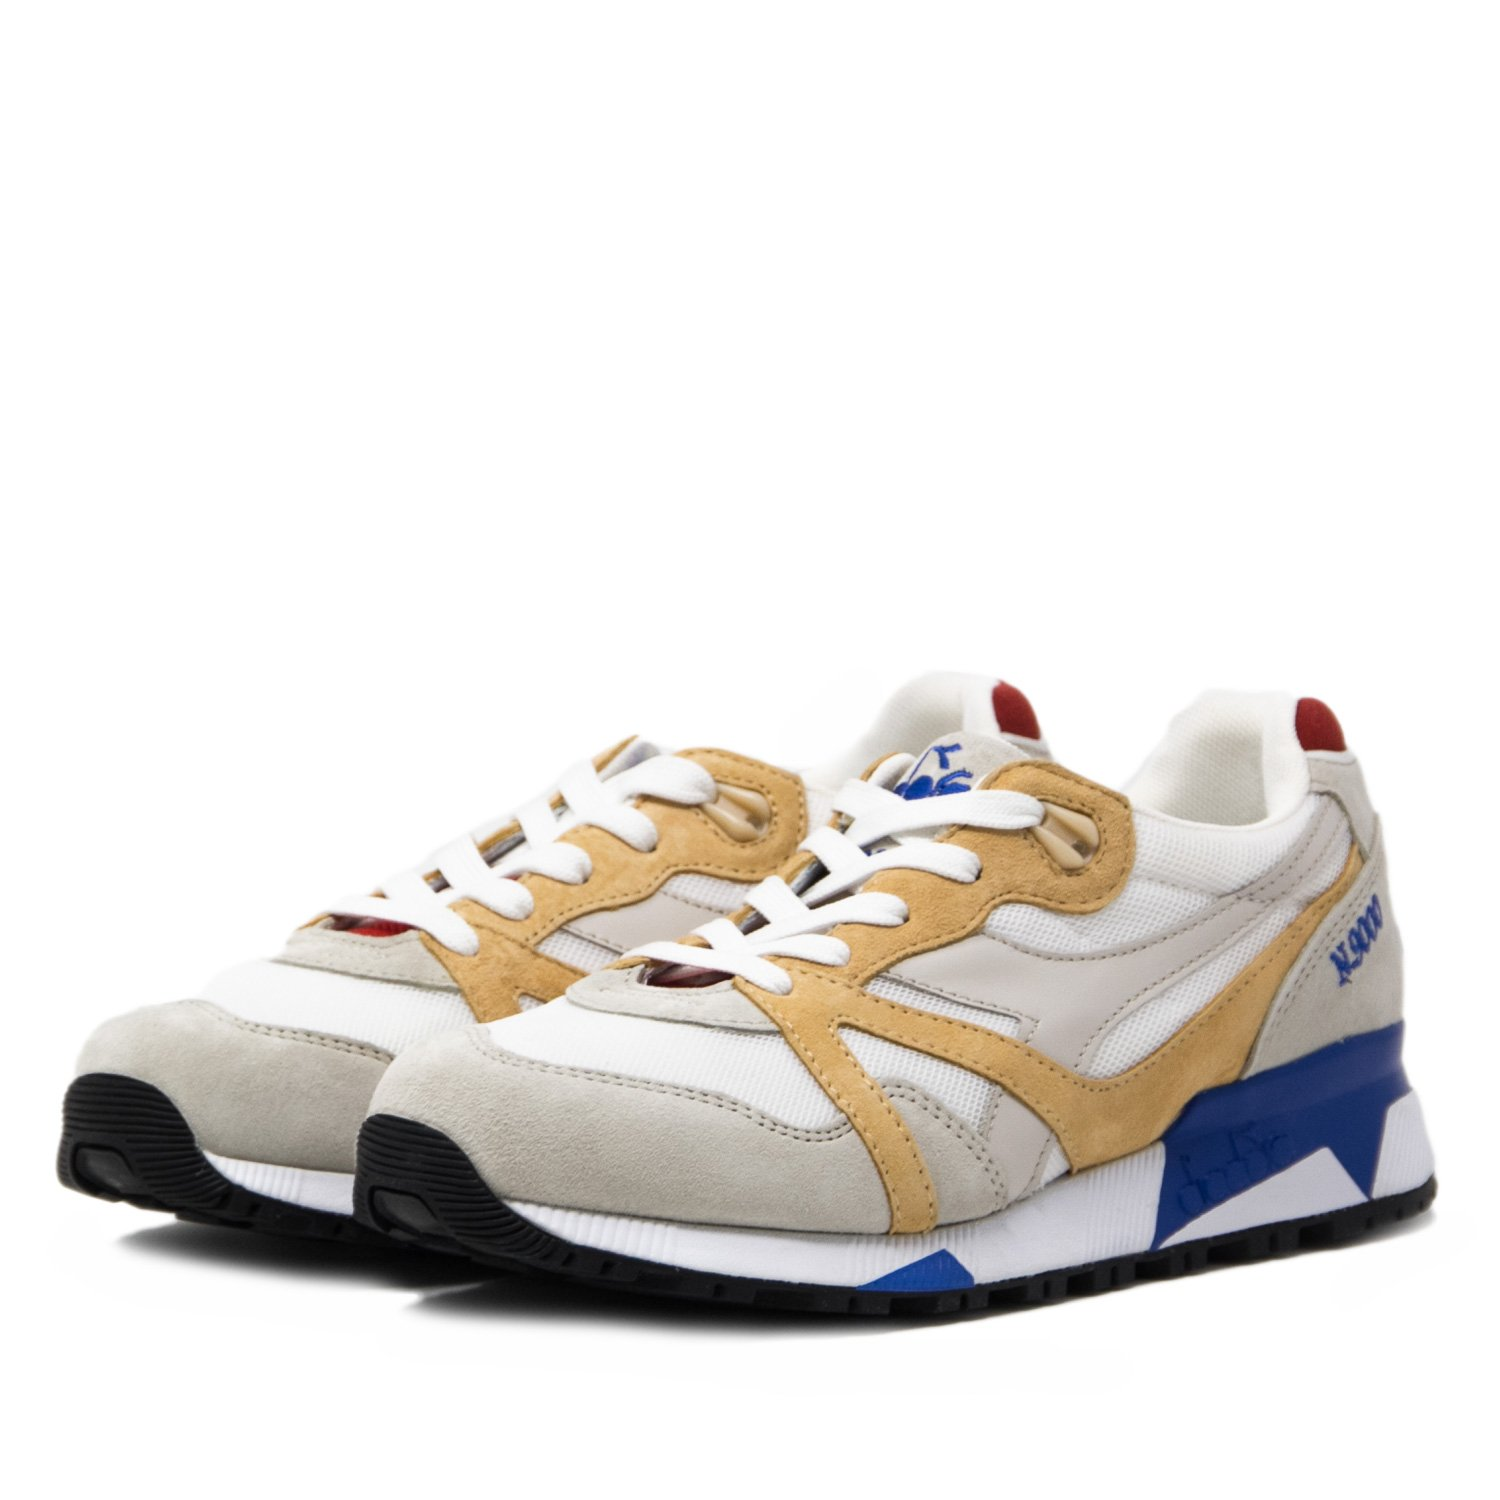 d23ae016 Diadora - Diadora N9000 Made In Italy